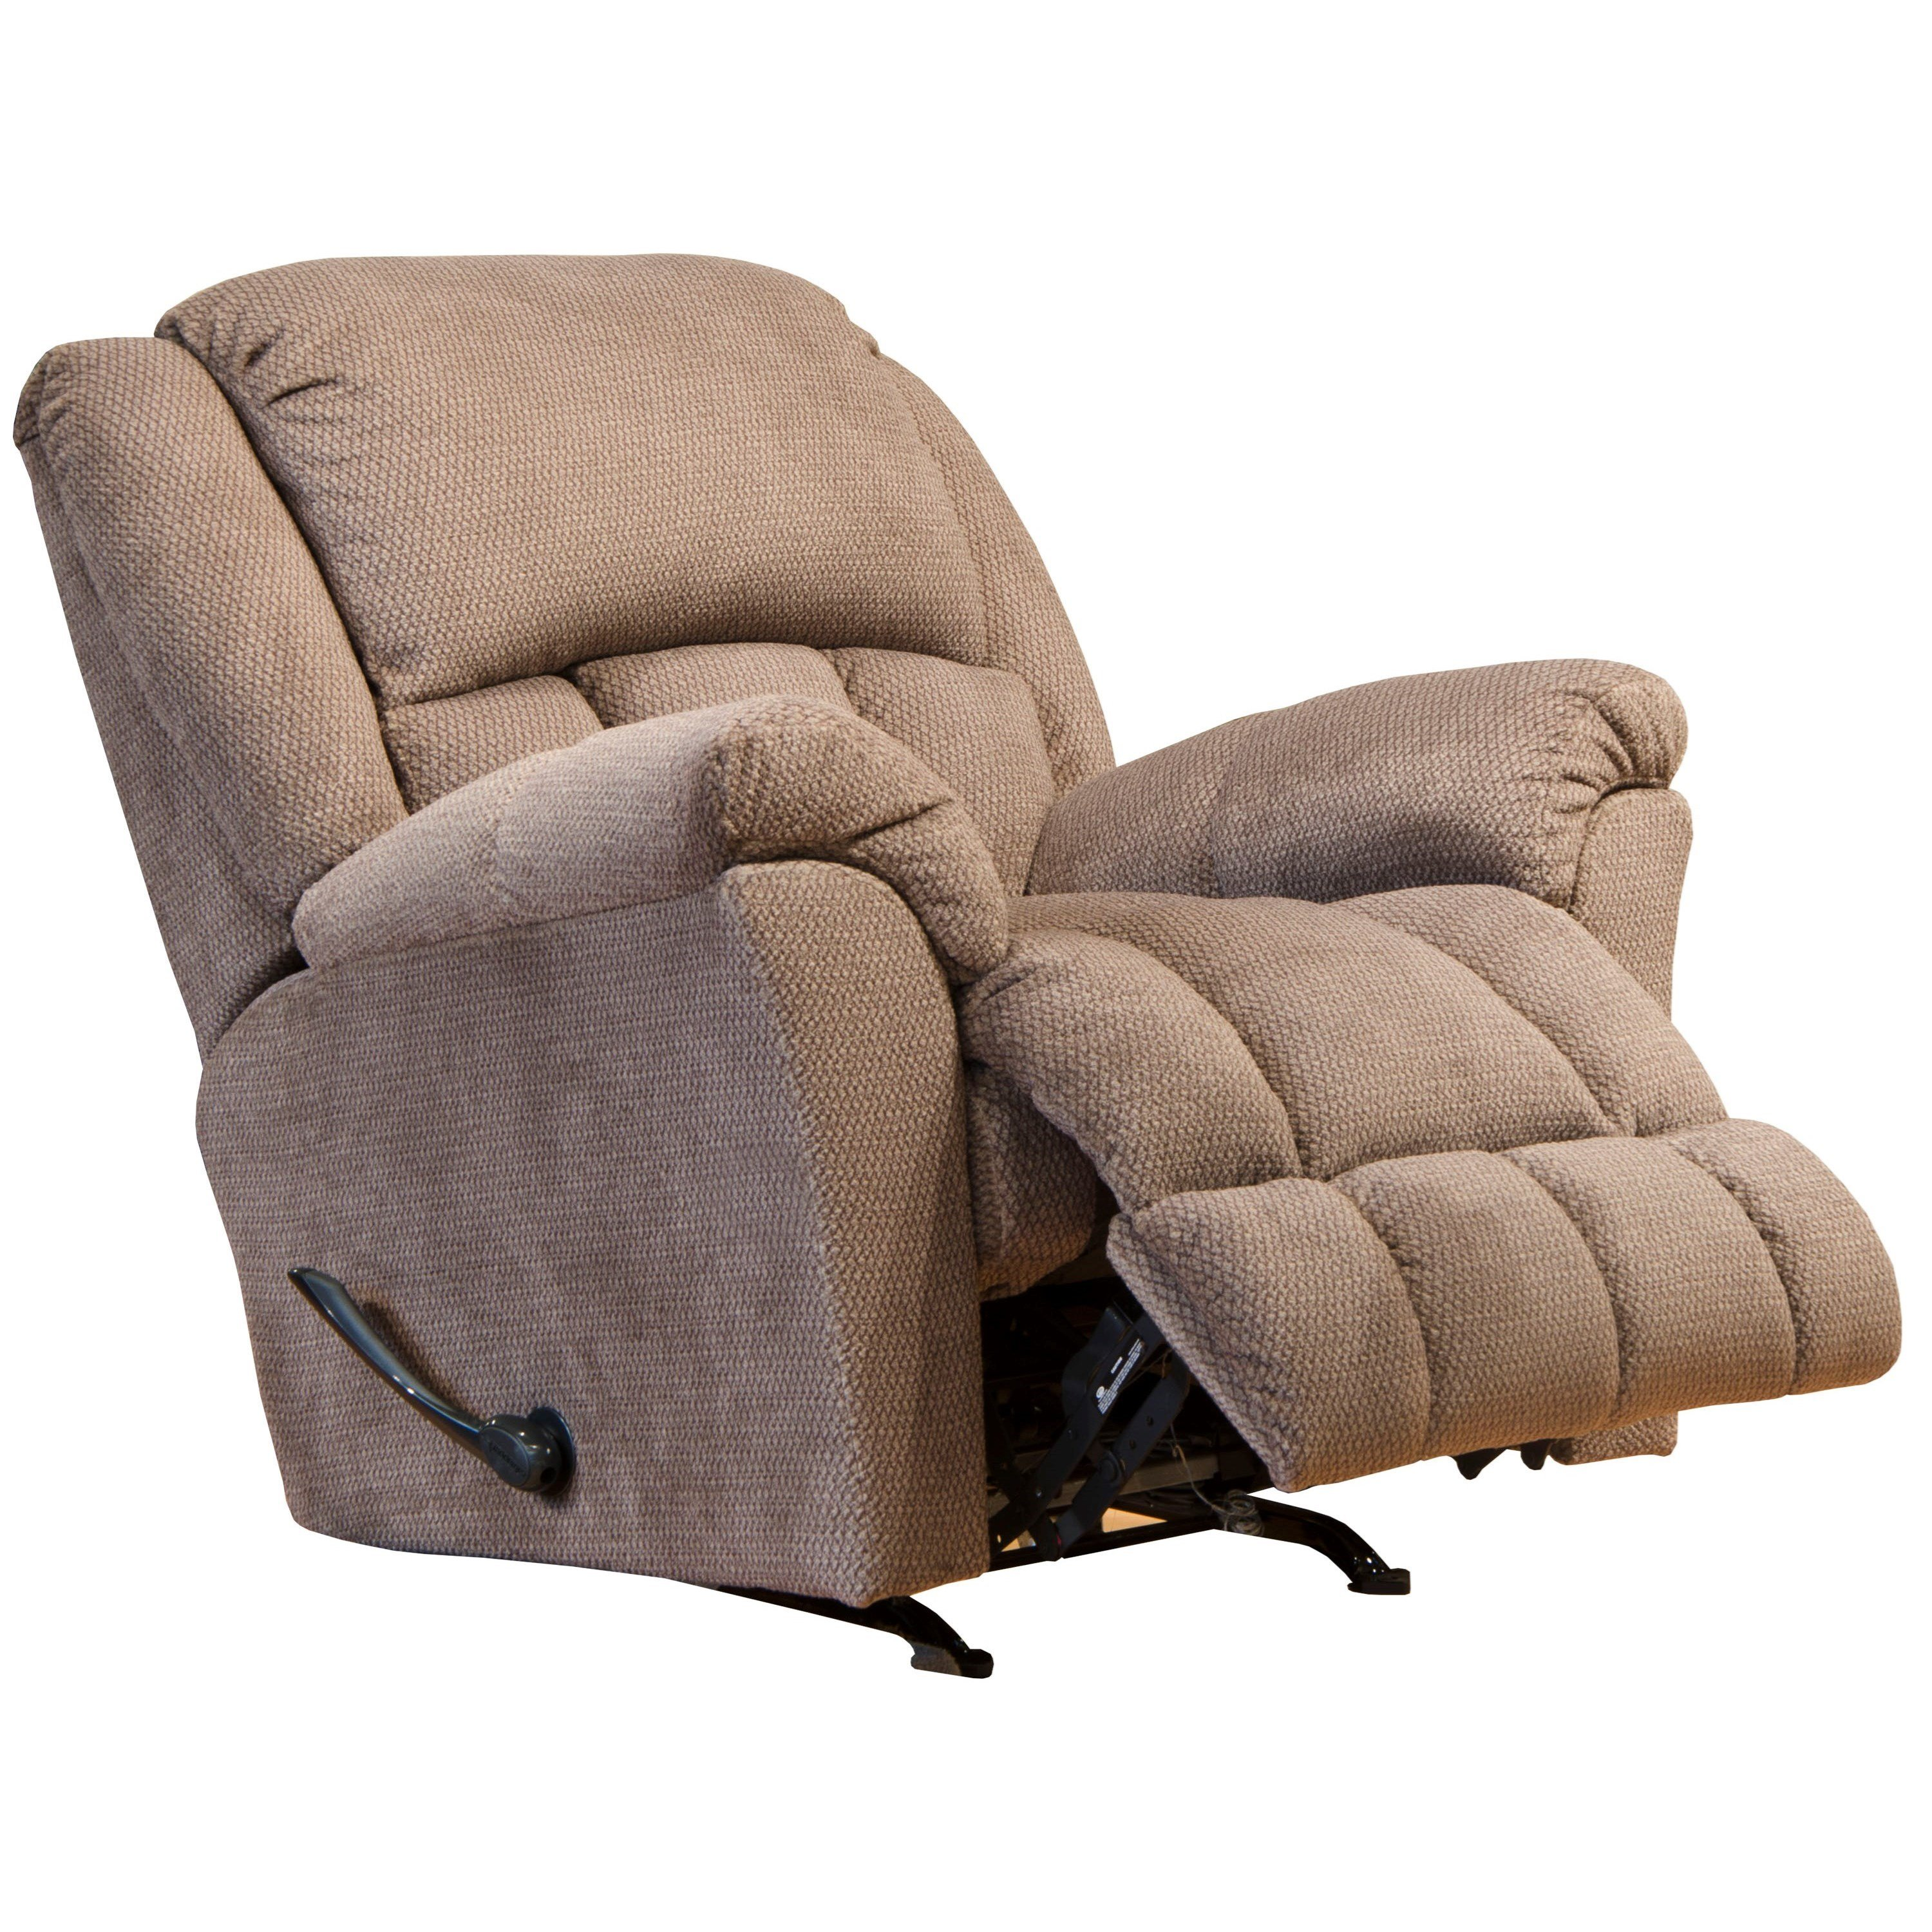 4211 Catnapper Recliner Tan